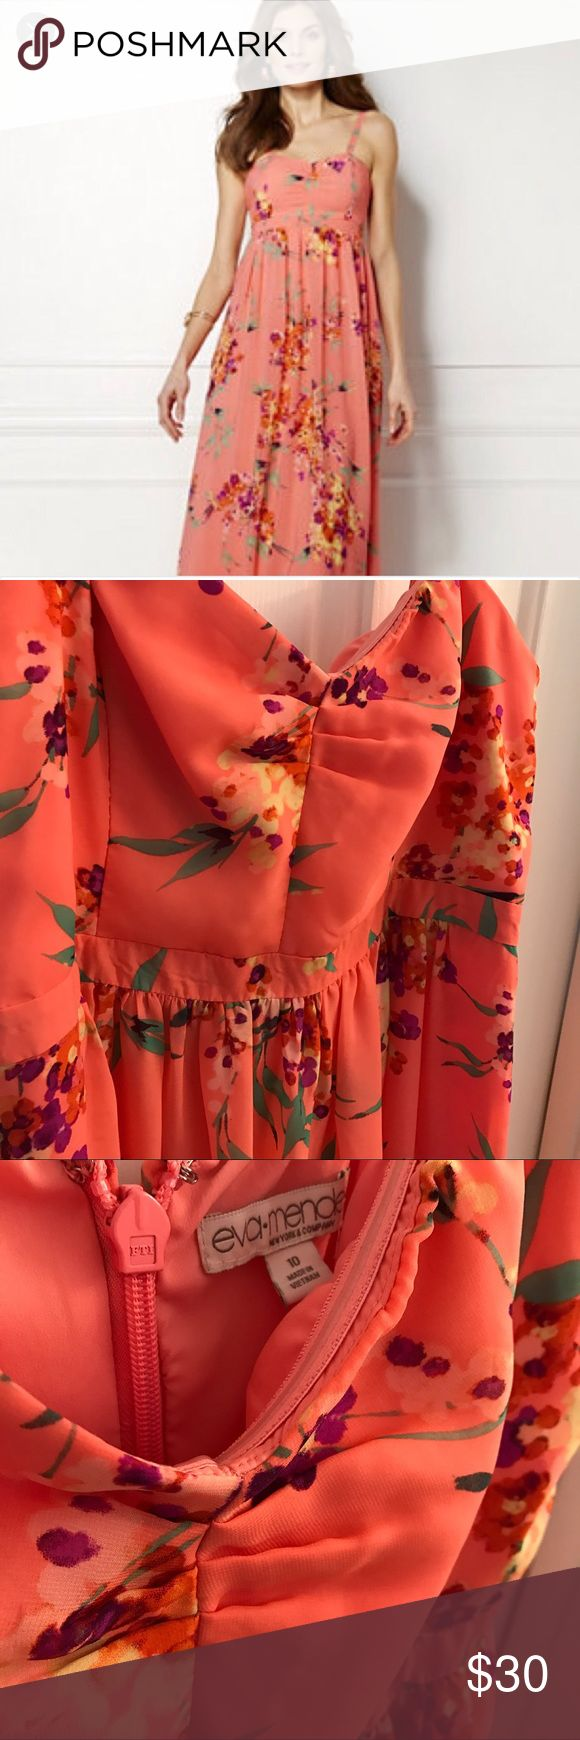 Orange Floral Maxi Dress (Hemmed) Isn't this orange floral dress from the Eva Mendes line at New York and Company just gorgeous?! I wore this dress once for an Easter gathering. :) The pattern is so beautiful in person! It's silly soft and comes with a slip inside. Zippered enclosure in the back. *Please note I did get this hemmed. I am 5 feet tall.* This dress can be dressed up for fancy occasions or dressed down a cute jean jacket. New York & Company Dresses Maxi